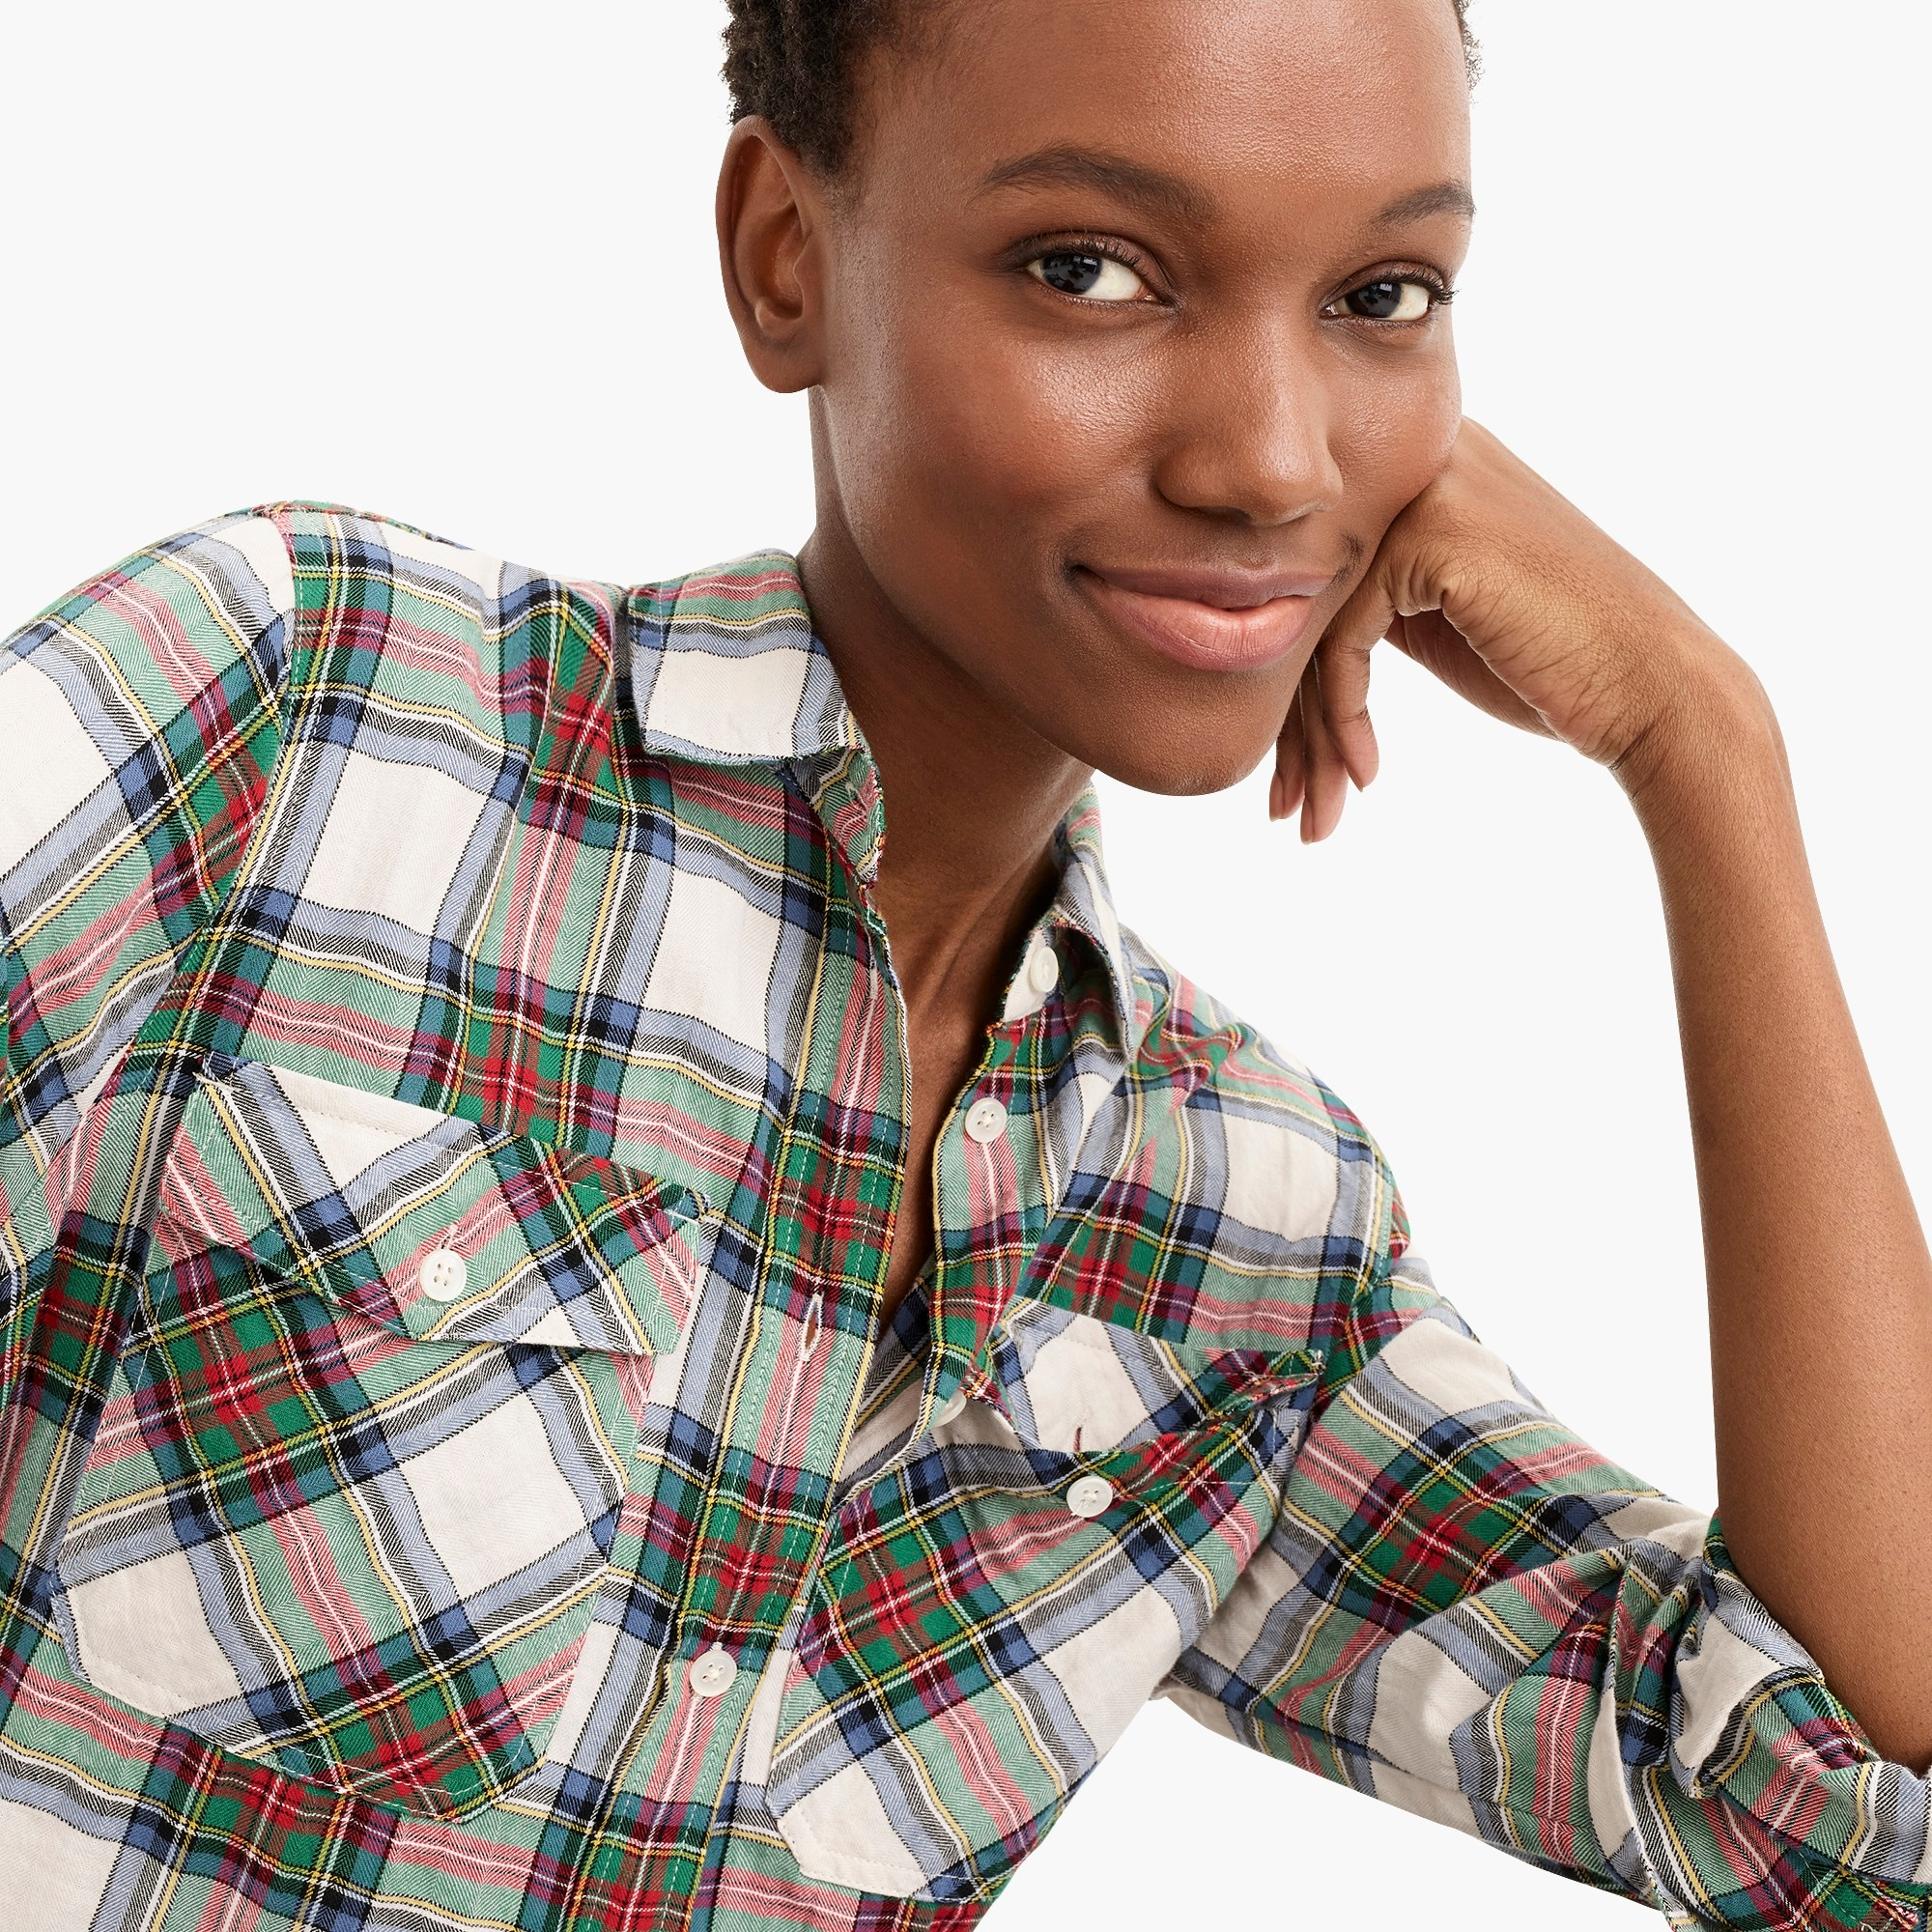 Image 3 for Tall boyfriend shirt in stewart plaid